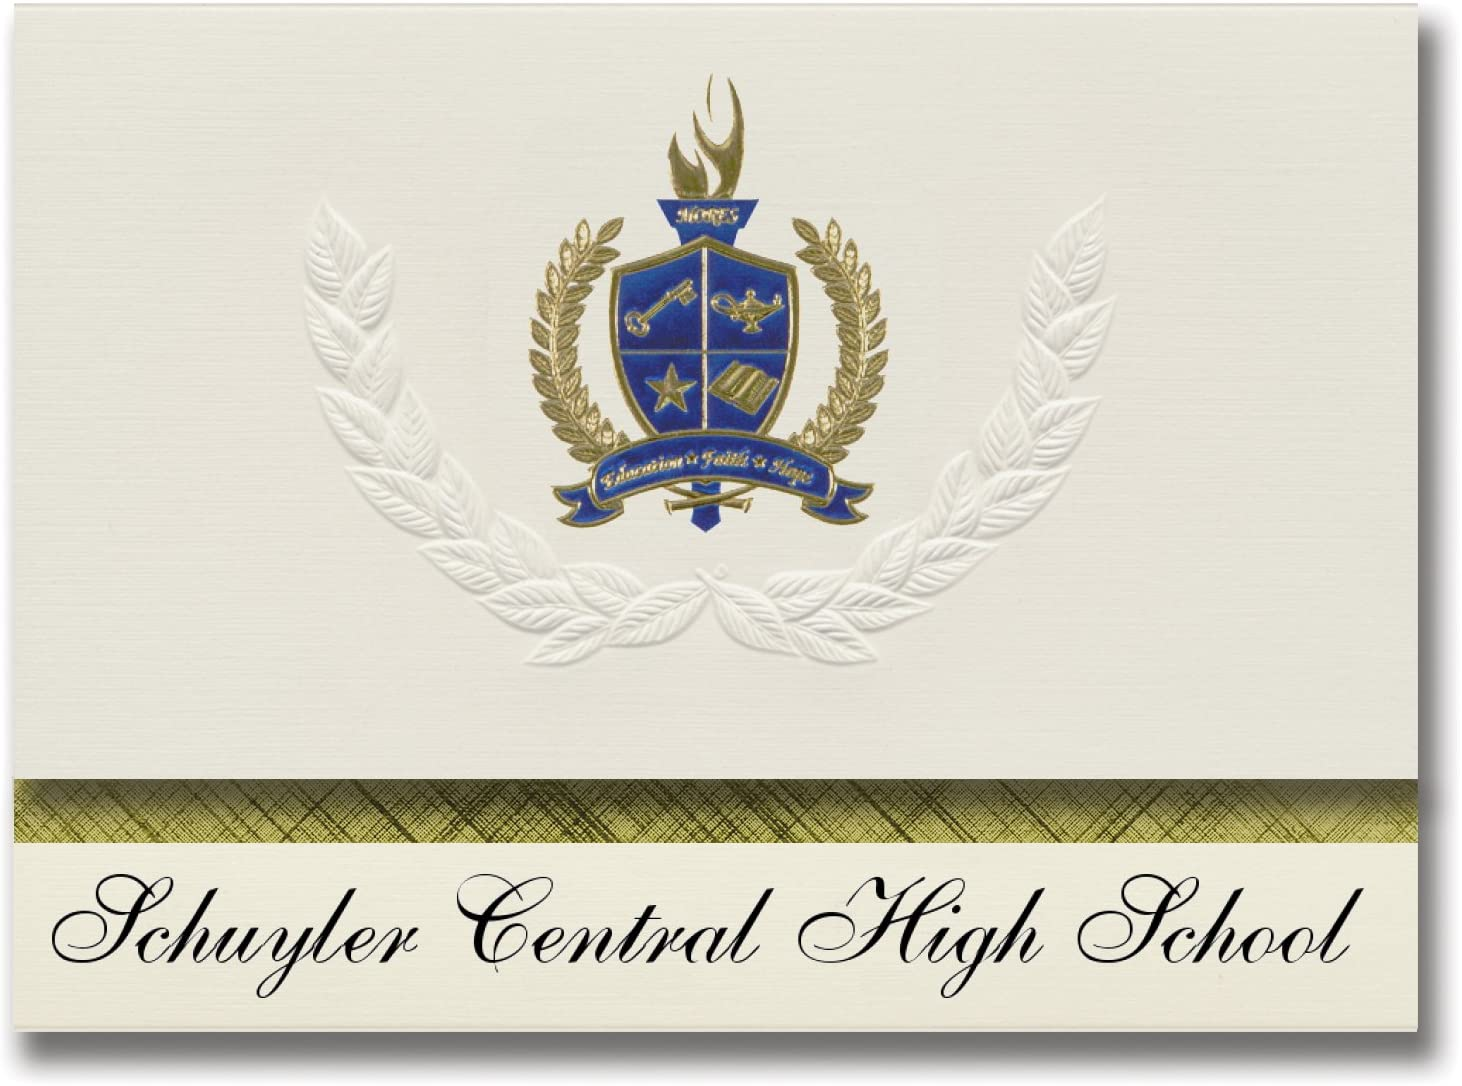 Signature Announcements Schuyler Central High School (Schuyler, NE) Graduation Announcements, Presidential style, Basic package of 25 with Gold & Blue Metallic Foil seal